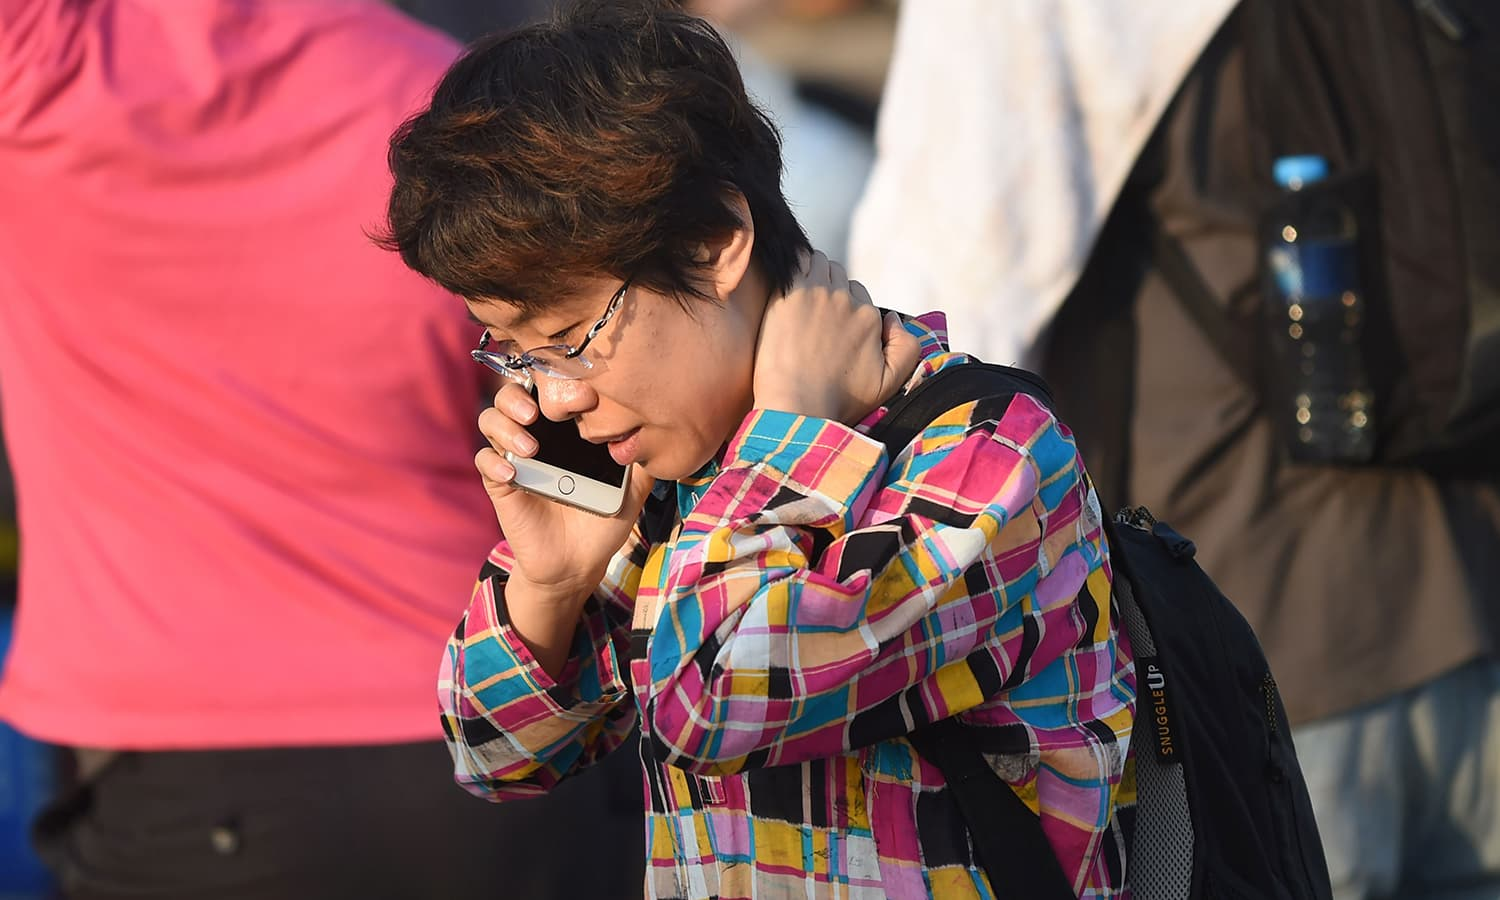 A guest talks on her mobile phone outside the hotel. — AFP